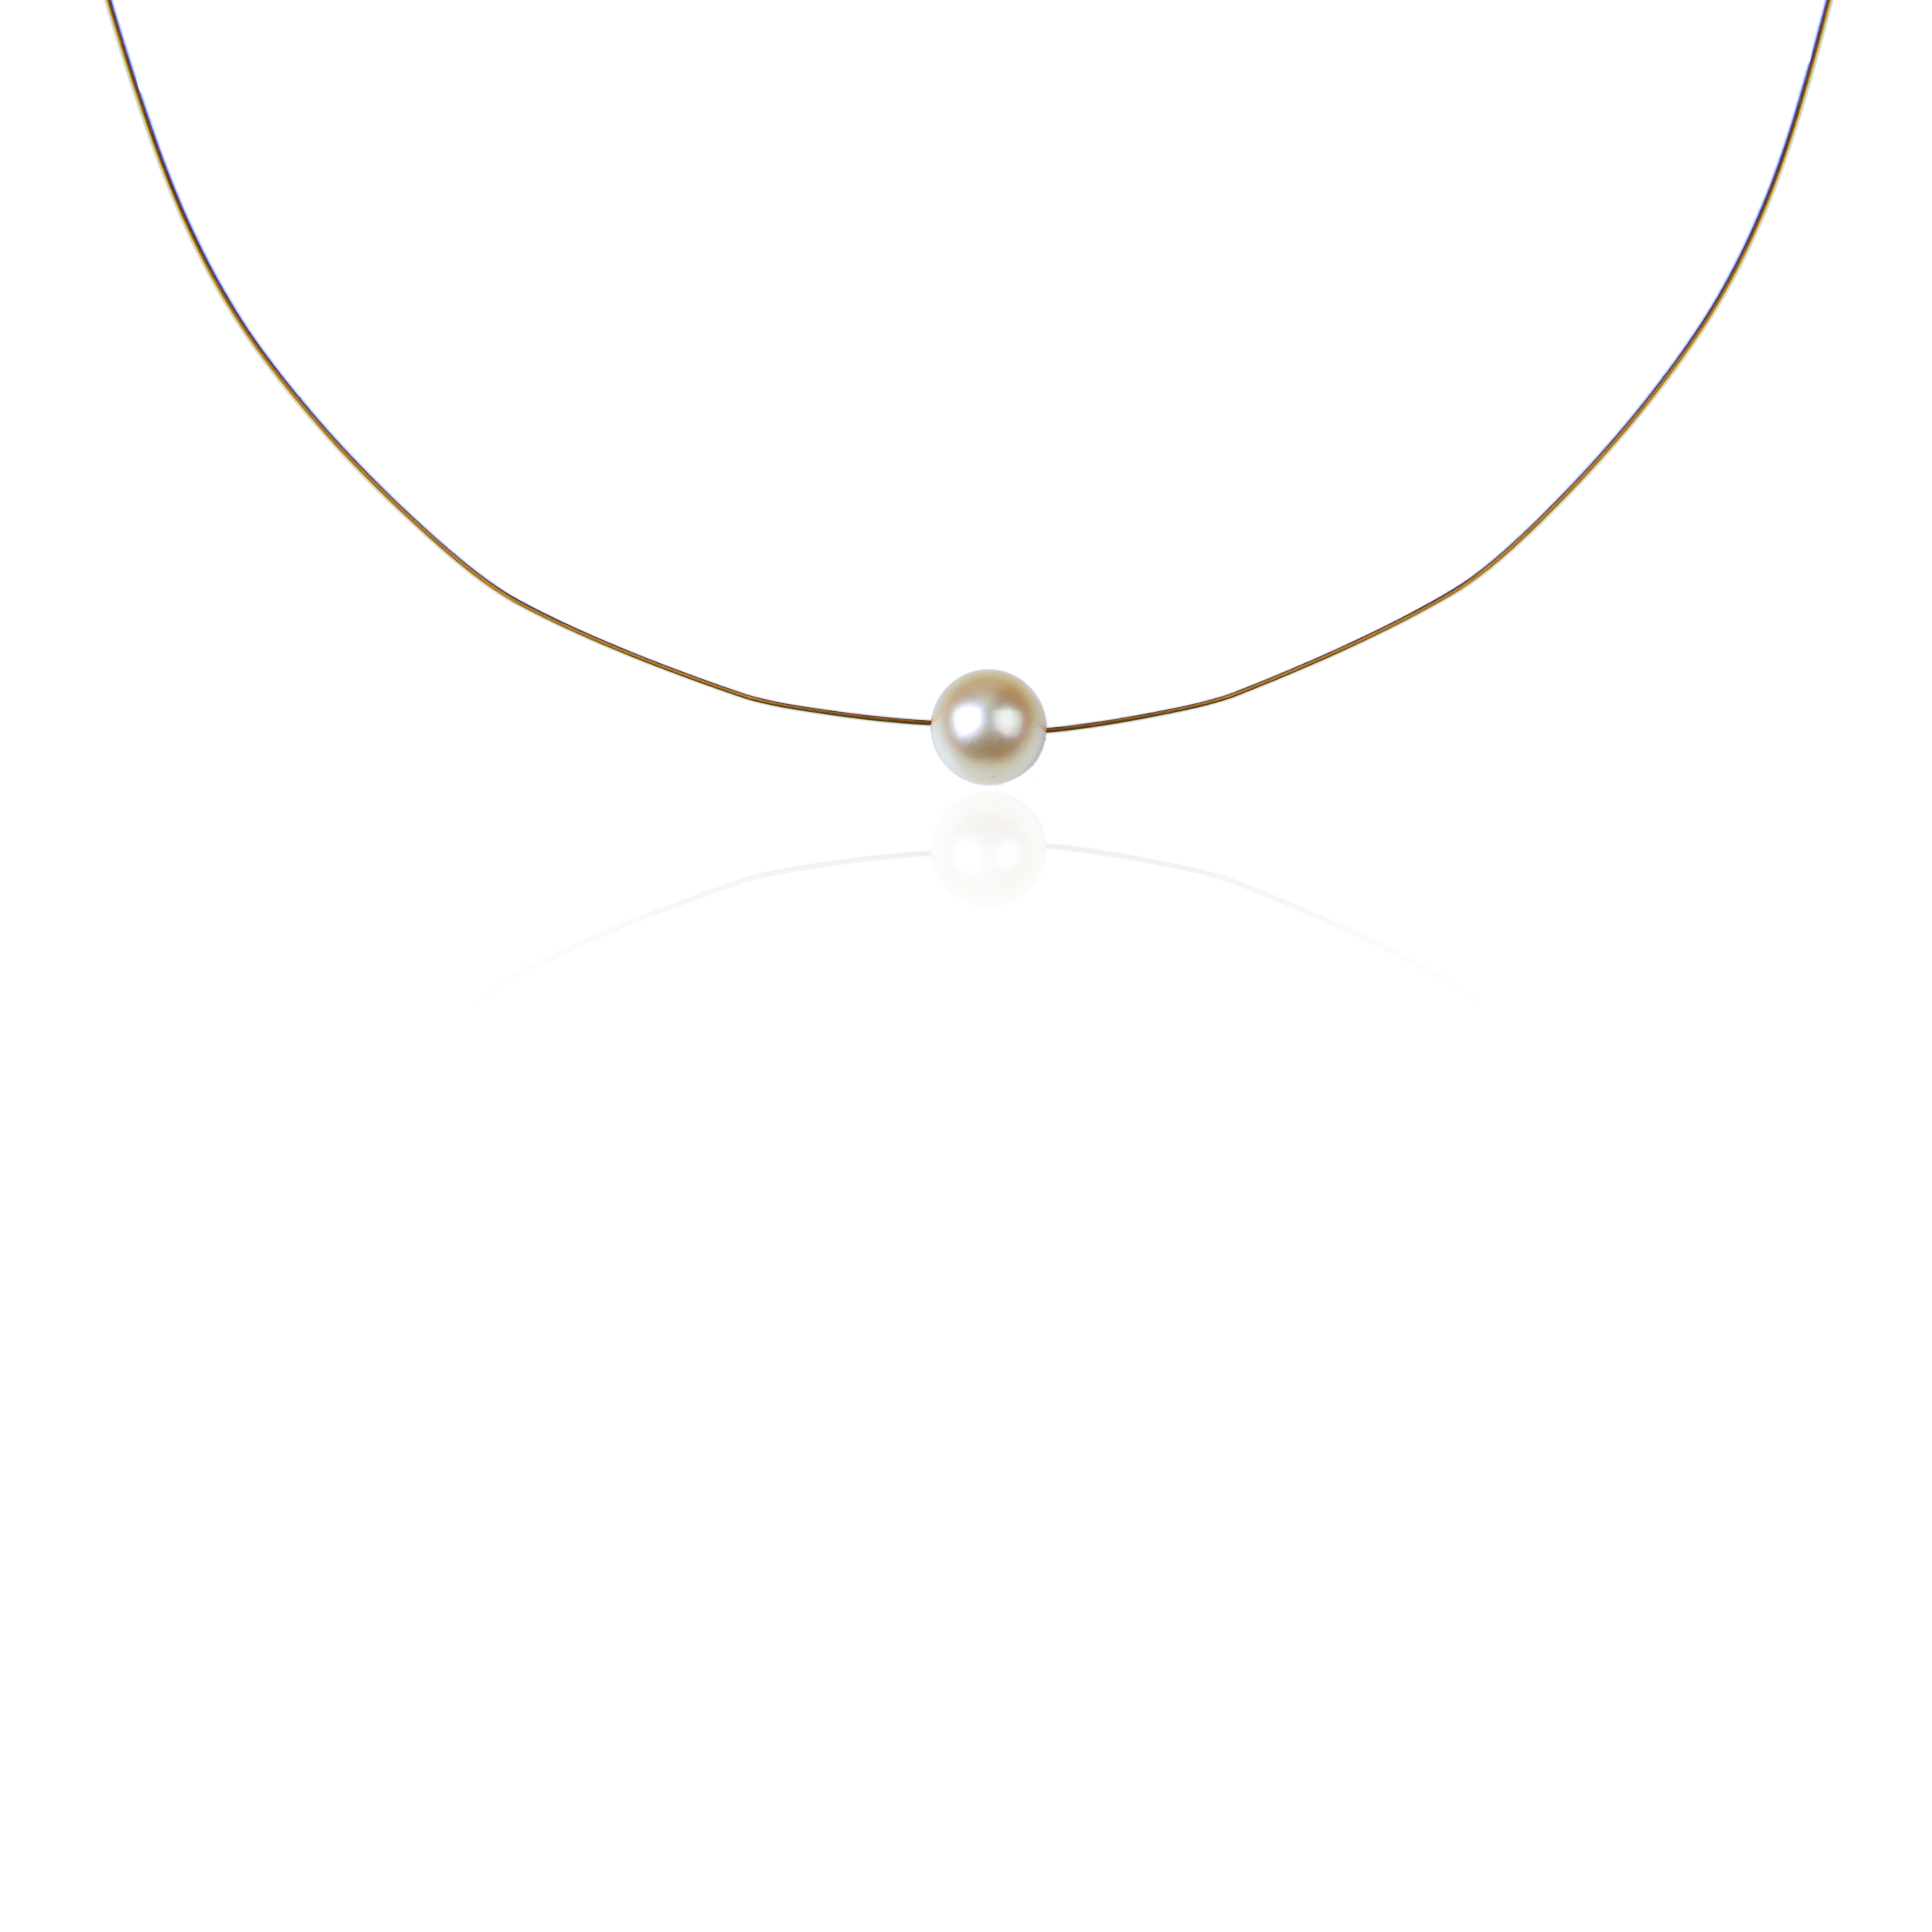 8mm Golden Akoya Cultured Pearl Solitaire Titanium Necklace - nk216